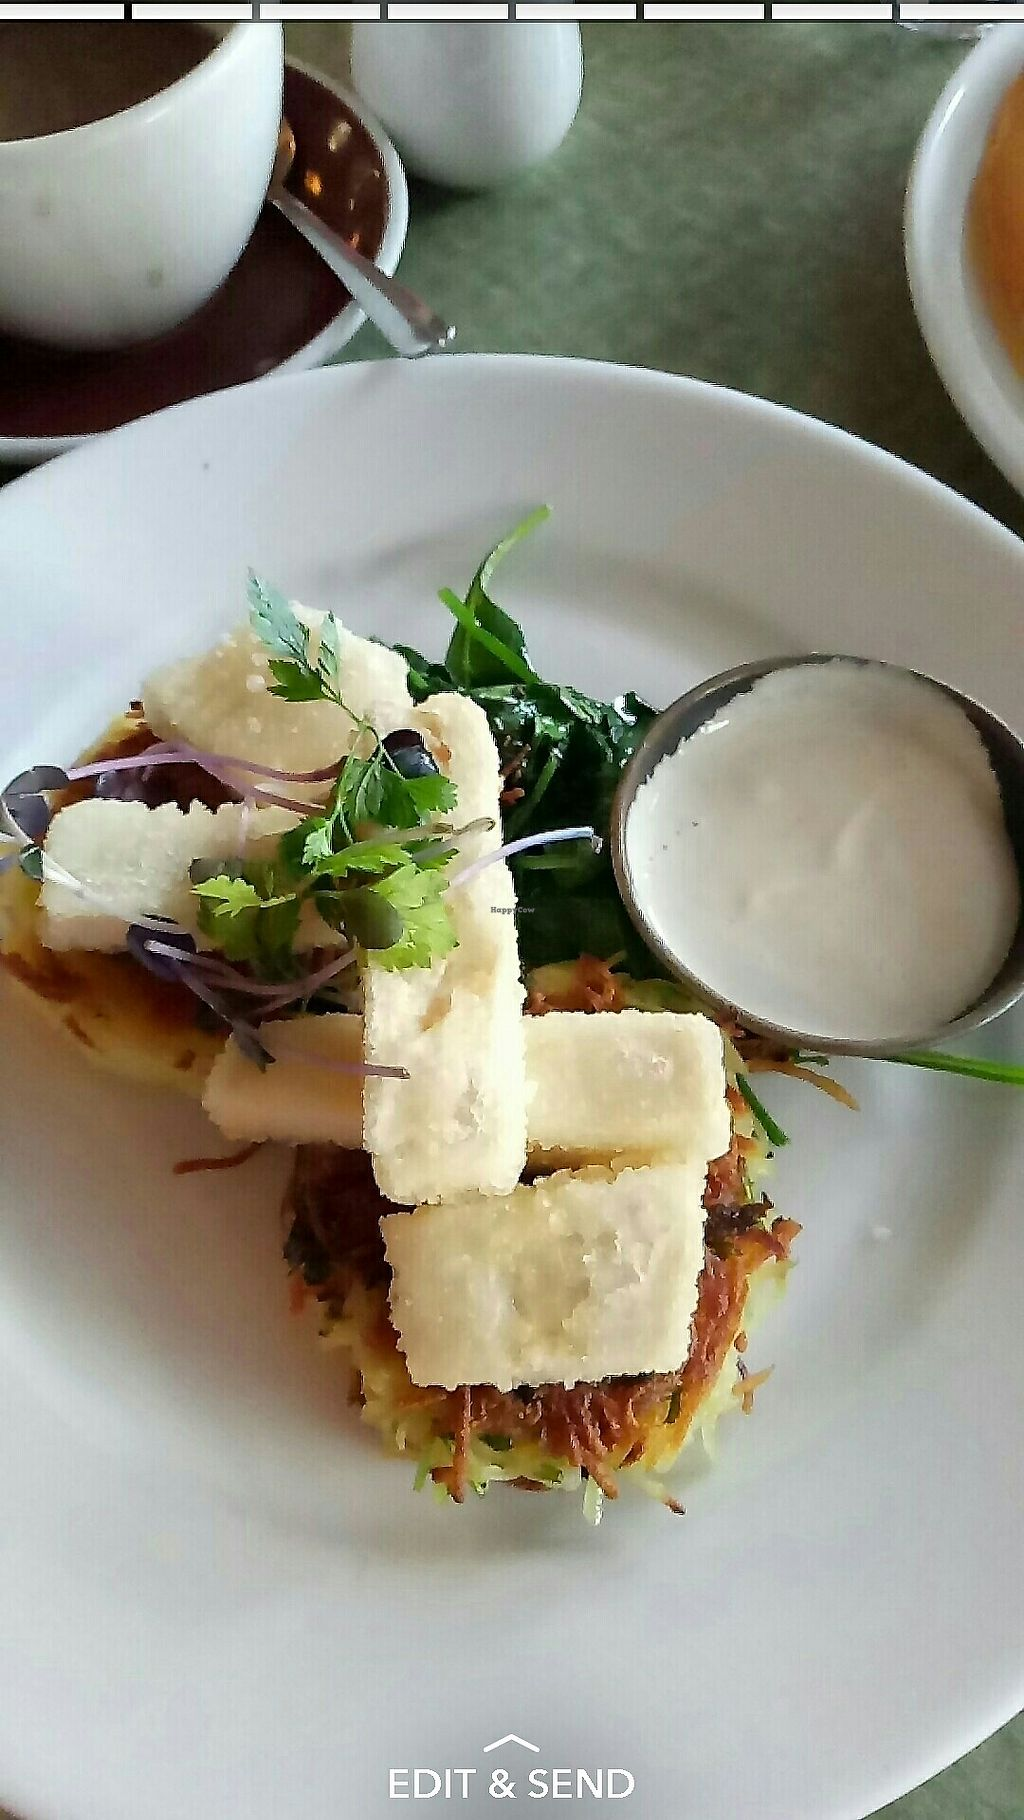 """Photo of GoBang Espresso  by <a href=""""/members/profile/jennybean678"""">jennybean678</a> <br/>Potato Hashcakes with Tofu <br/> July 17, 2017  - <a href='/contact/abuse/image/94681/281580'>Report</a>"""